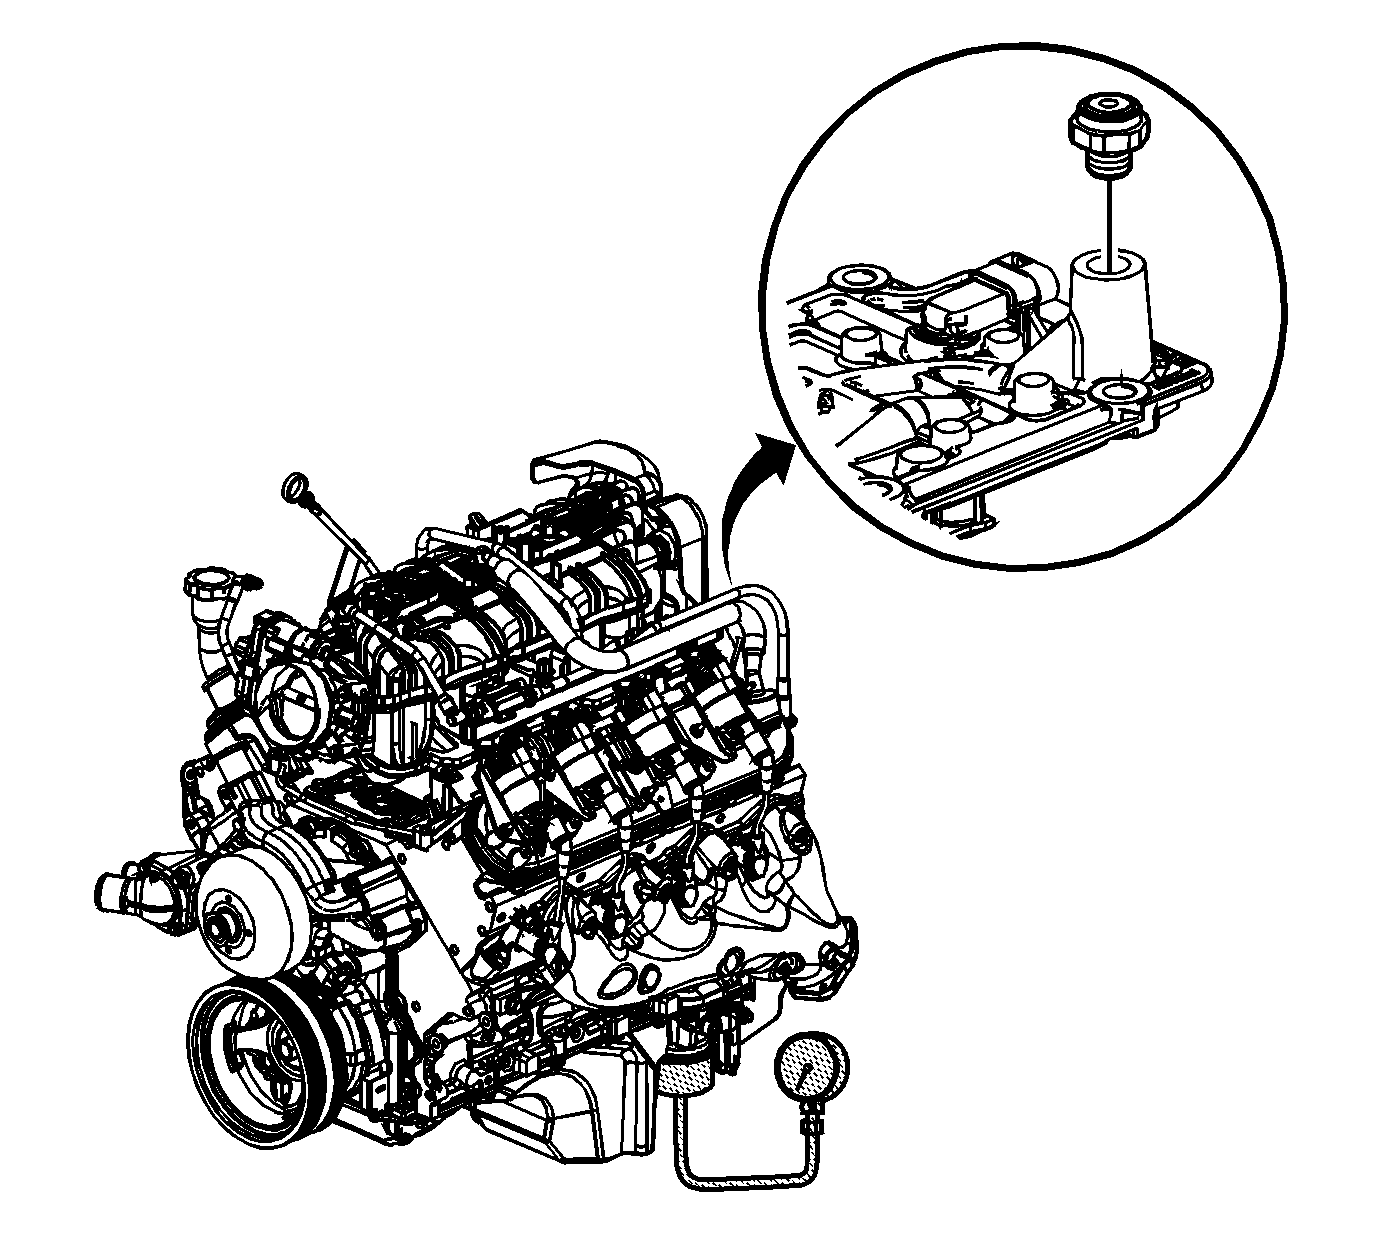 Fig 2: View Of Oil Pressure Sensor Courtesy of GENERAL MOTORS CORP. 4.